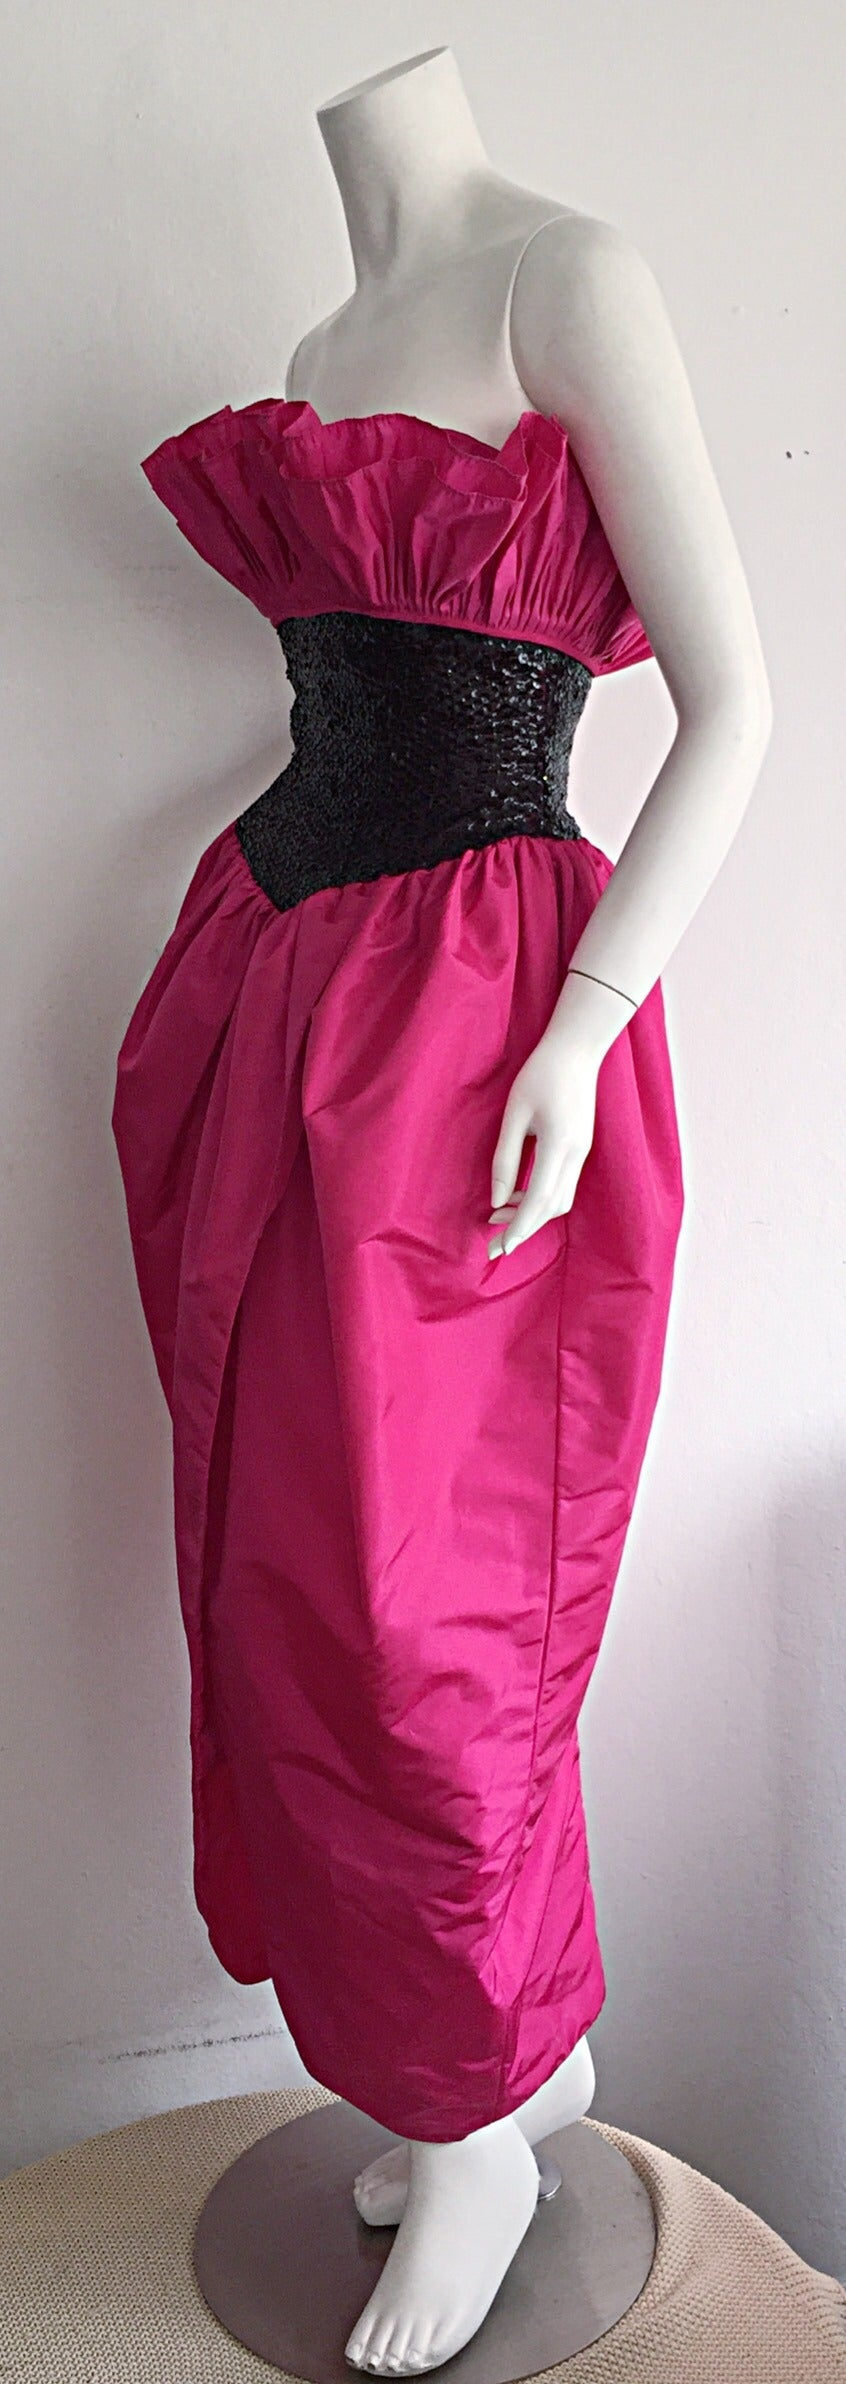 Incredible Vintage Victor Costa for Neiman Marcus Hot Pink Origami Tulip Dress For Sale 1